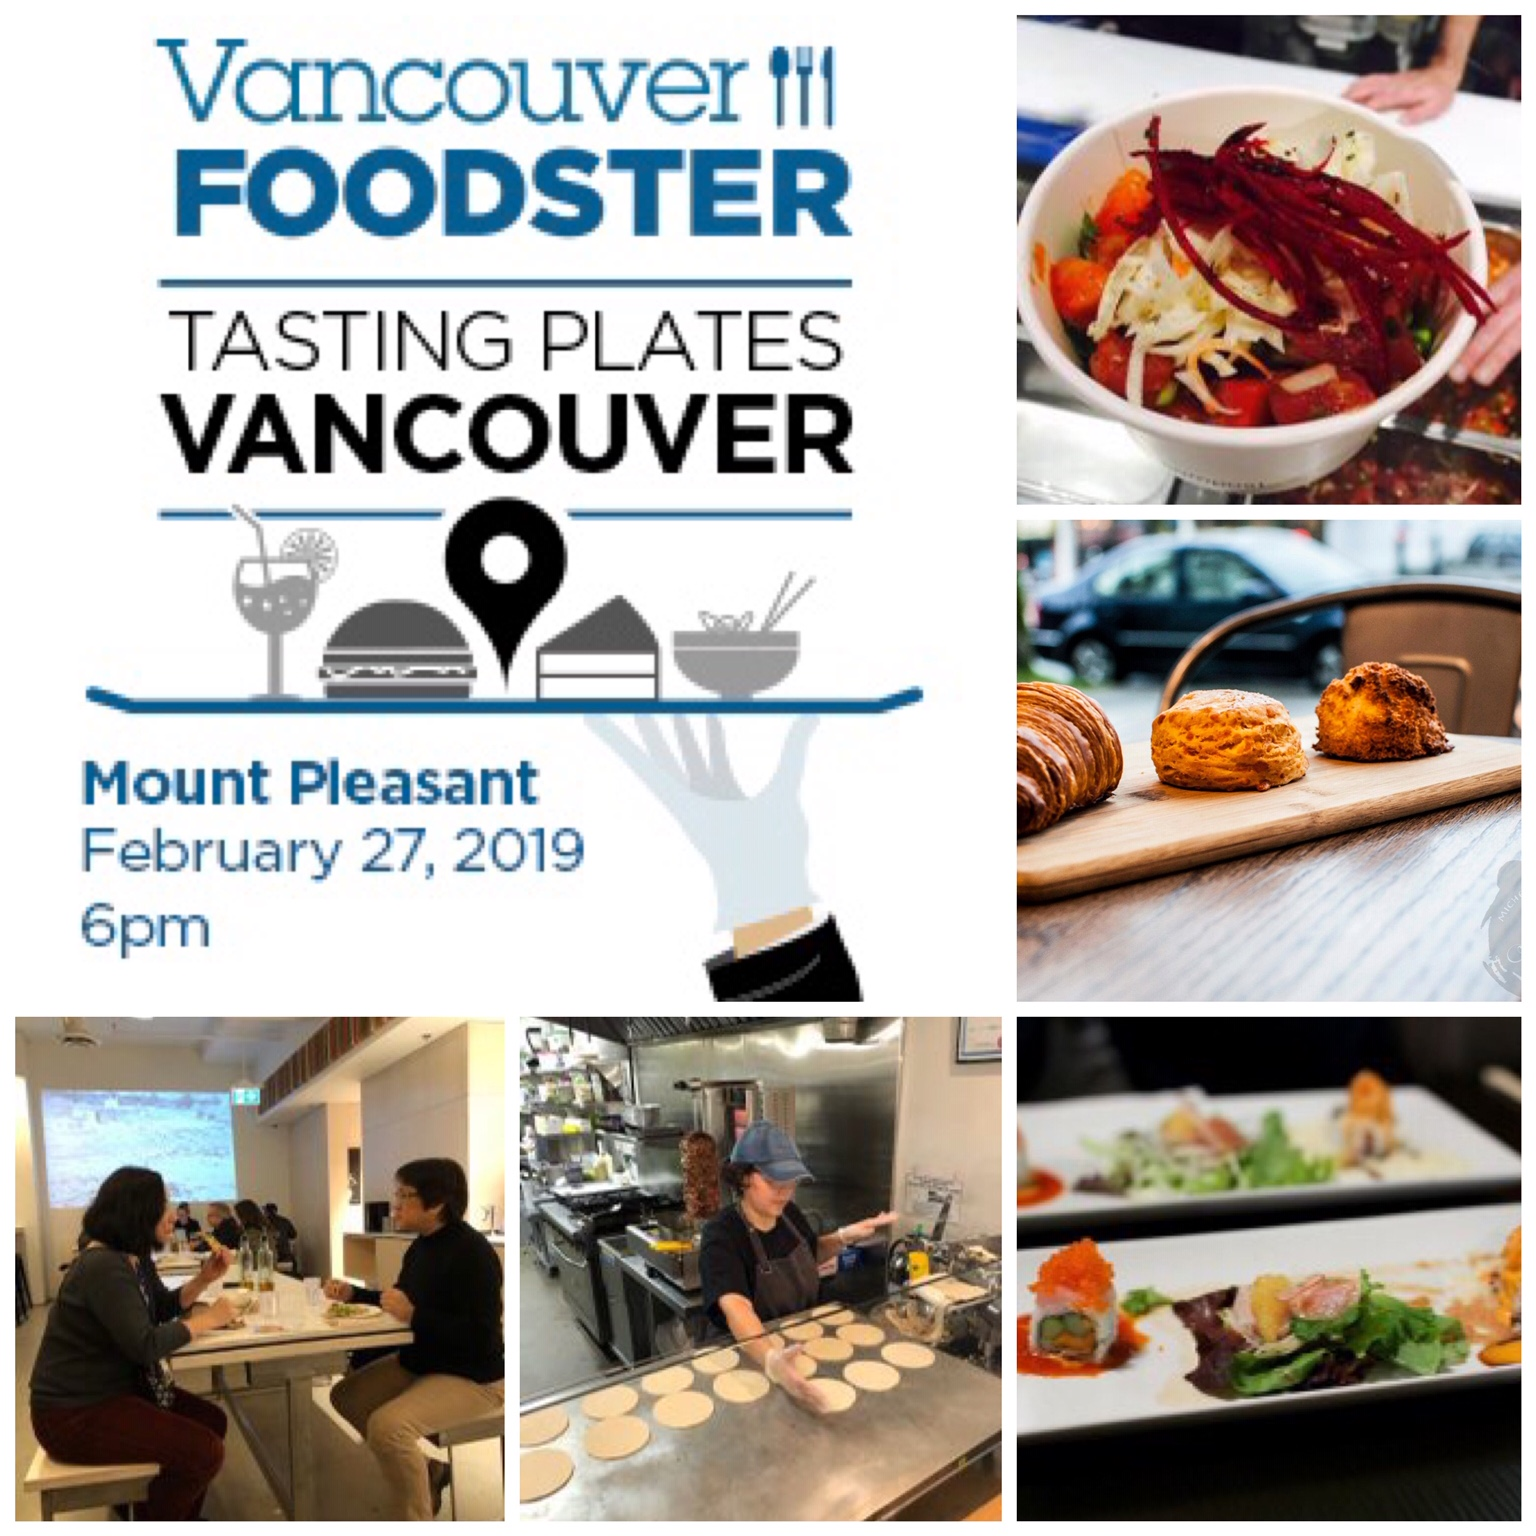 Tasting Plates Mount Pleasant on February 27